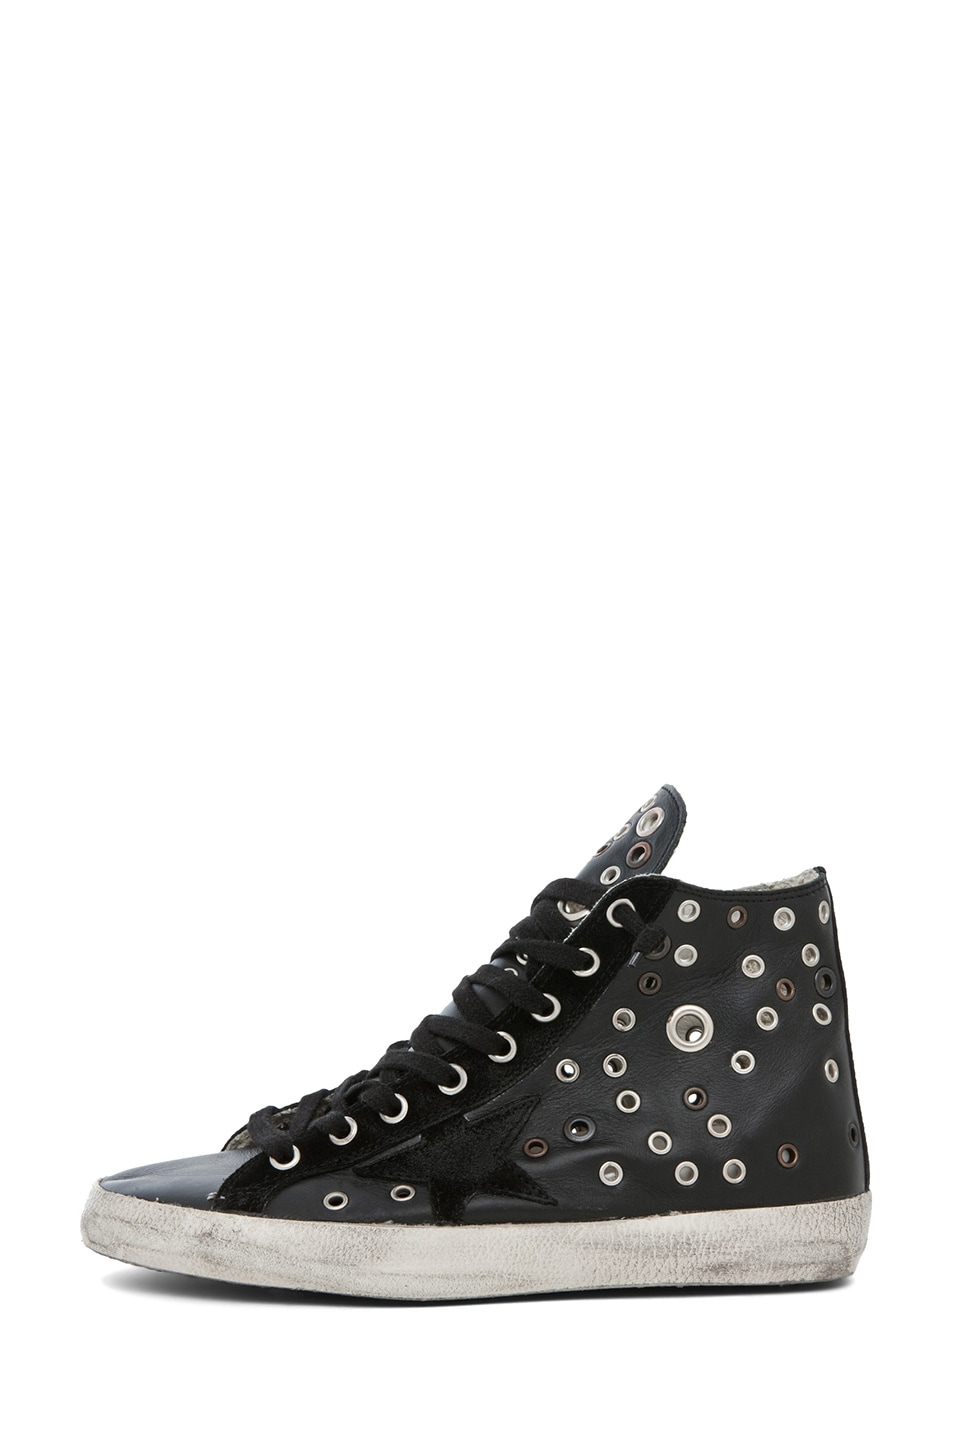 Image 1 of Golden Goose Francy Leather High Top Sneaker in Black Grommet